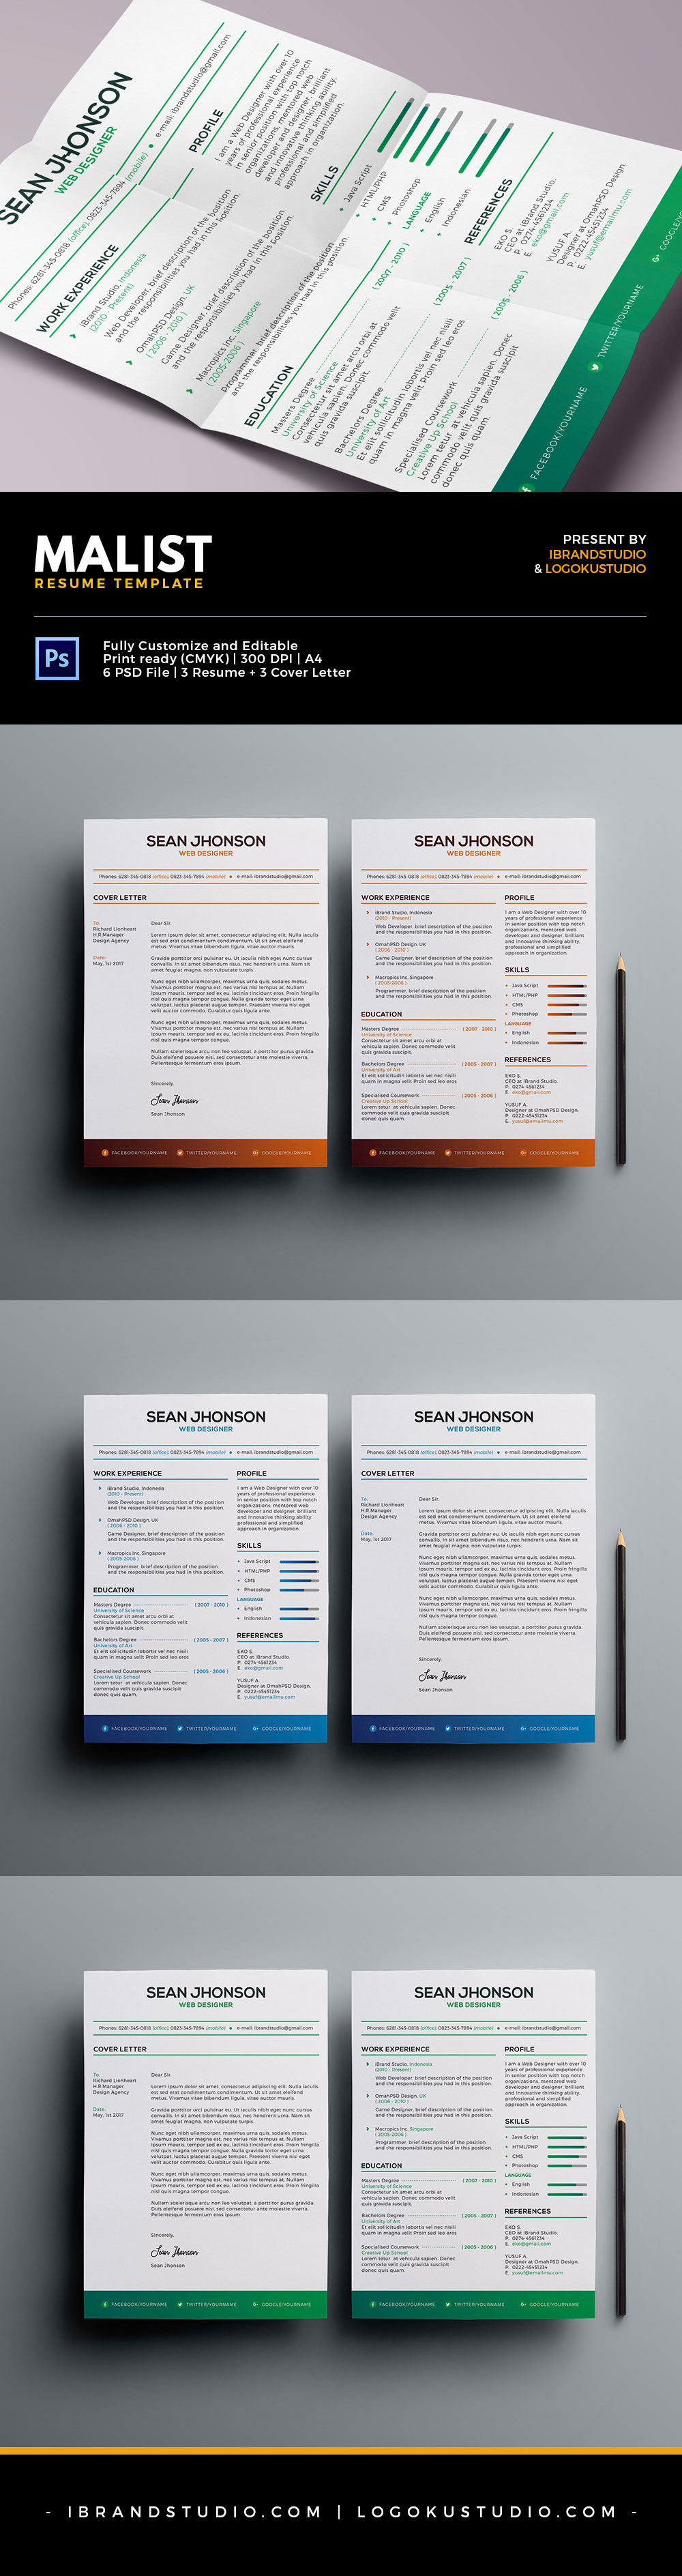 Free Malist Resume Template + Cover Letter